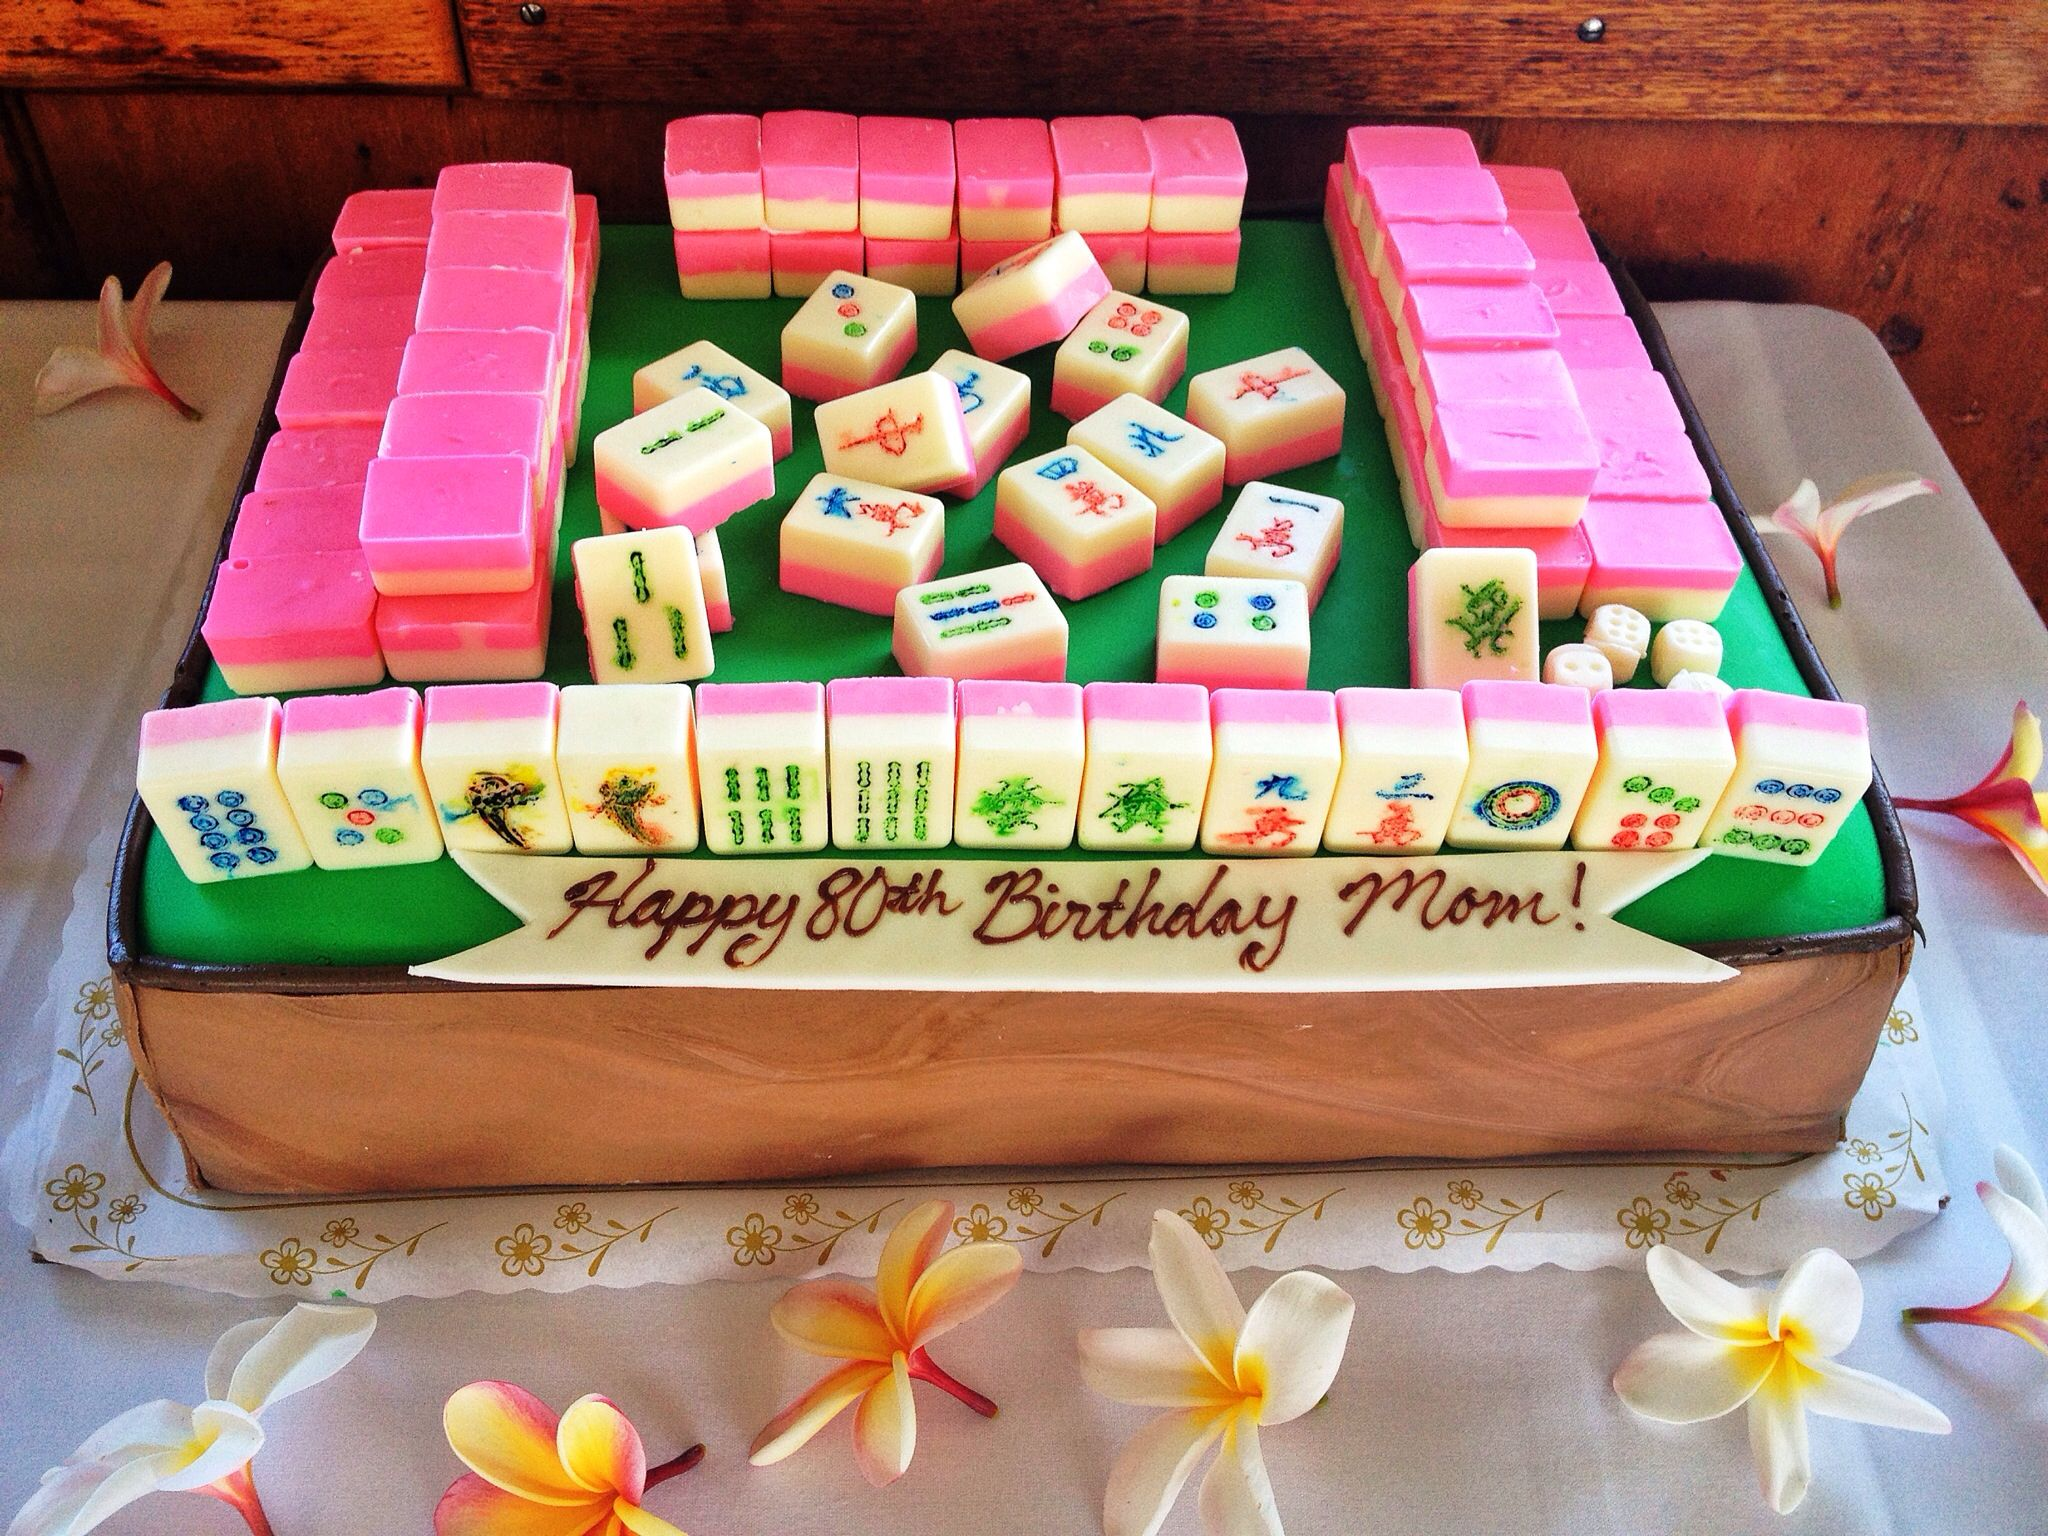 The Surprise Mahjong Cake My Friend And I Made For My Moms Big